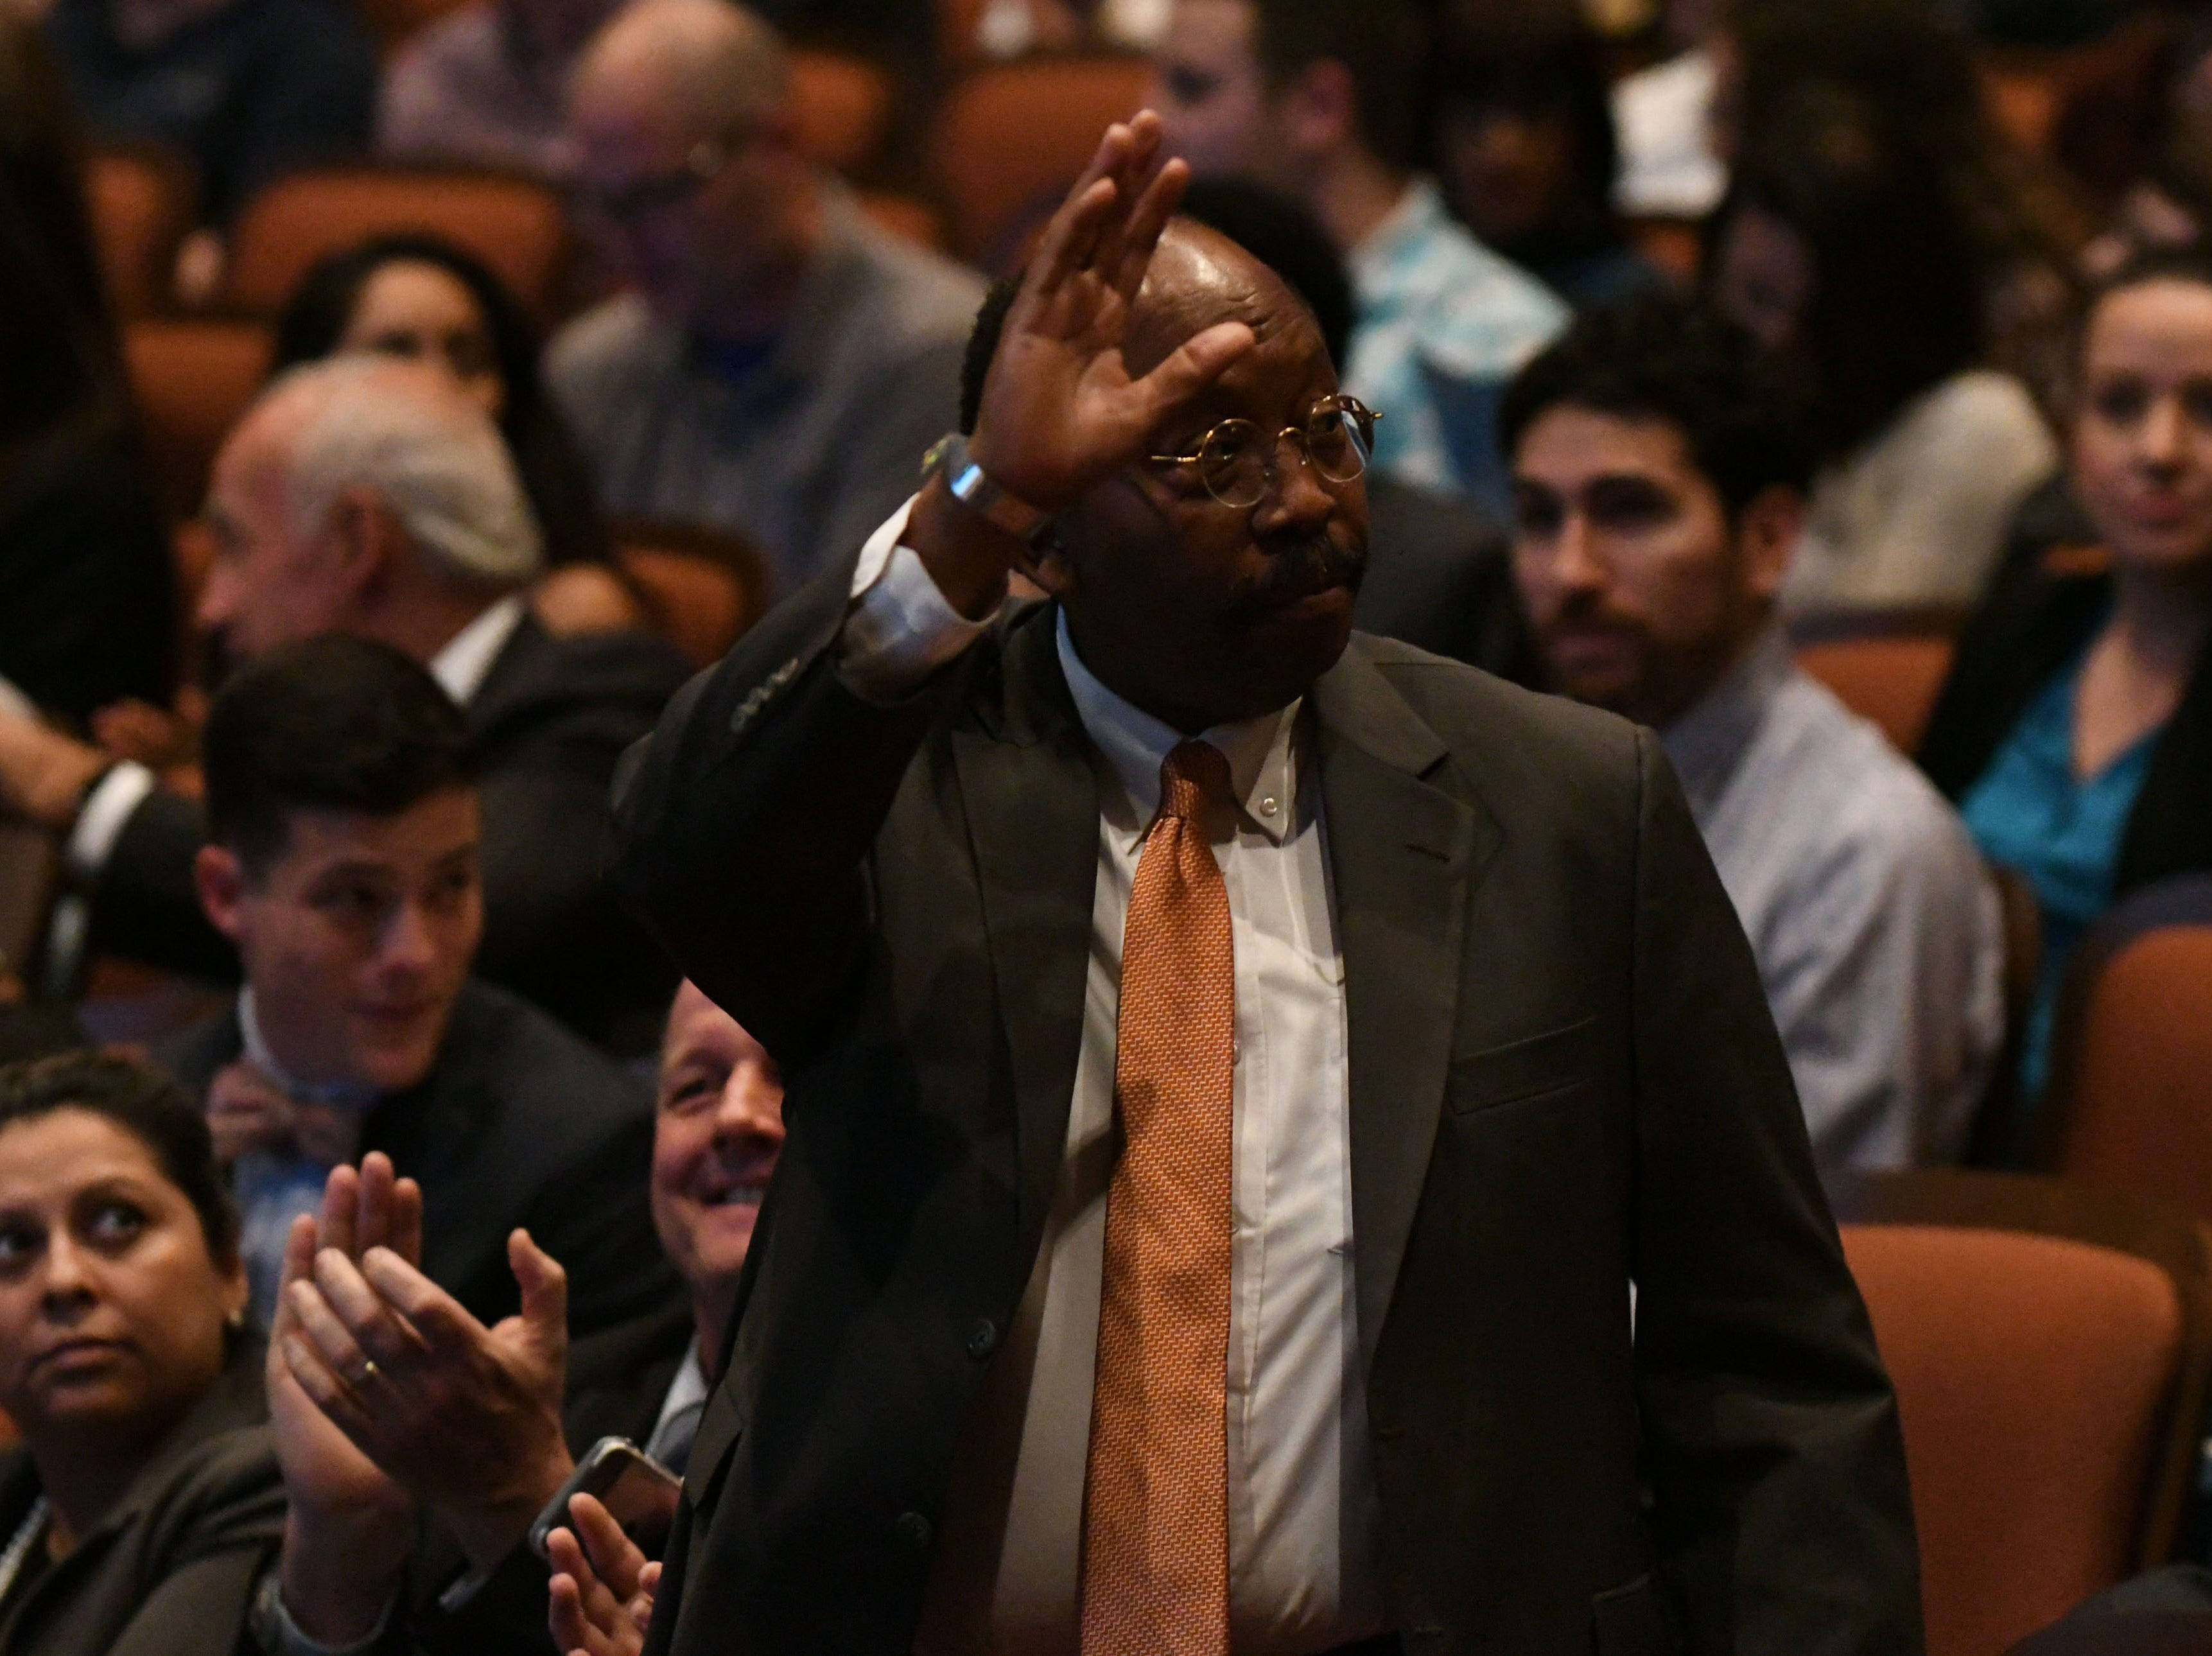 Commissioner Curtis Richardson waves as his name is announced at the Power Forward business event at the Ruby Diamond Hall, Wednesday Feb. 6, 2019. Shark Tank co-star and serial entrepreneur Kevin O'Leary was the featured speaker at the event.